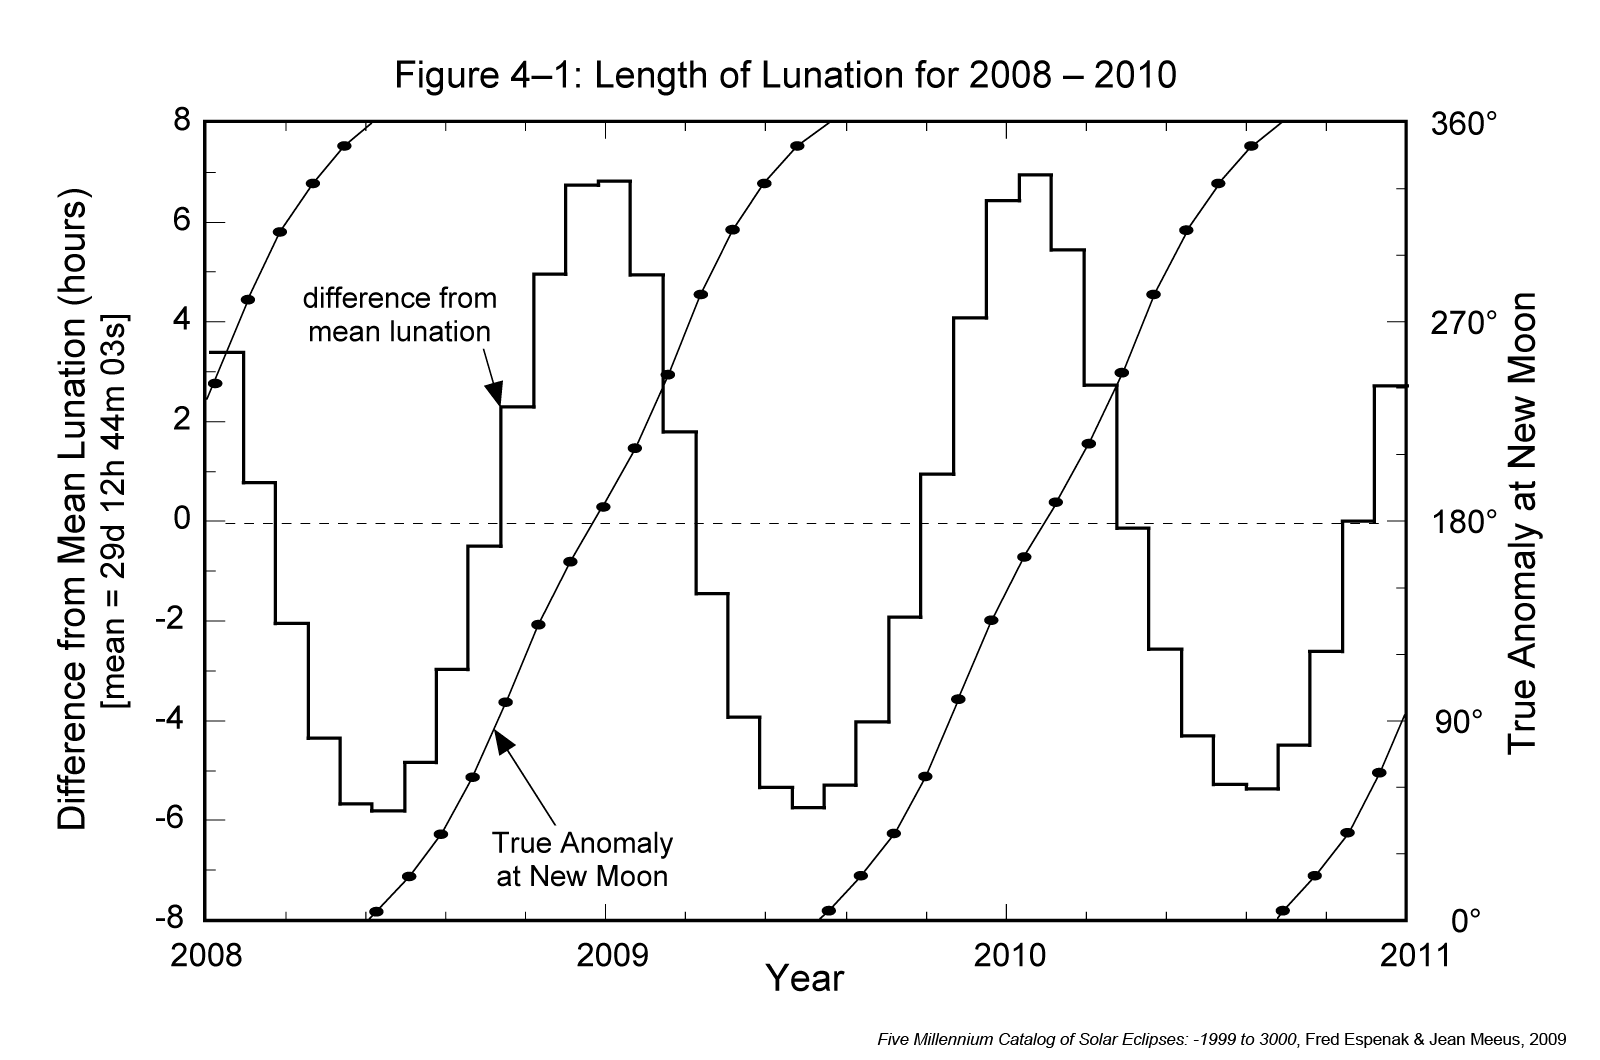 Length of Lunation Variation